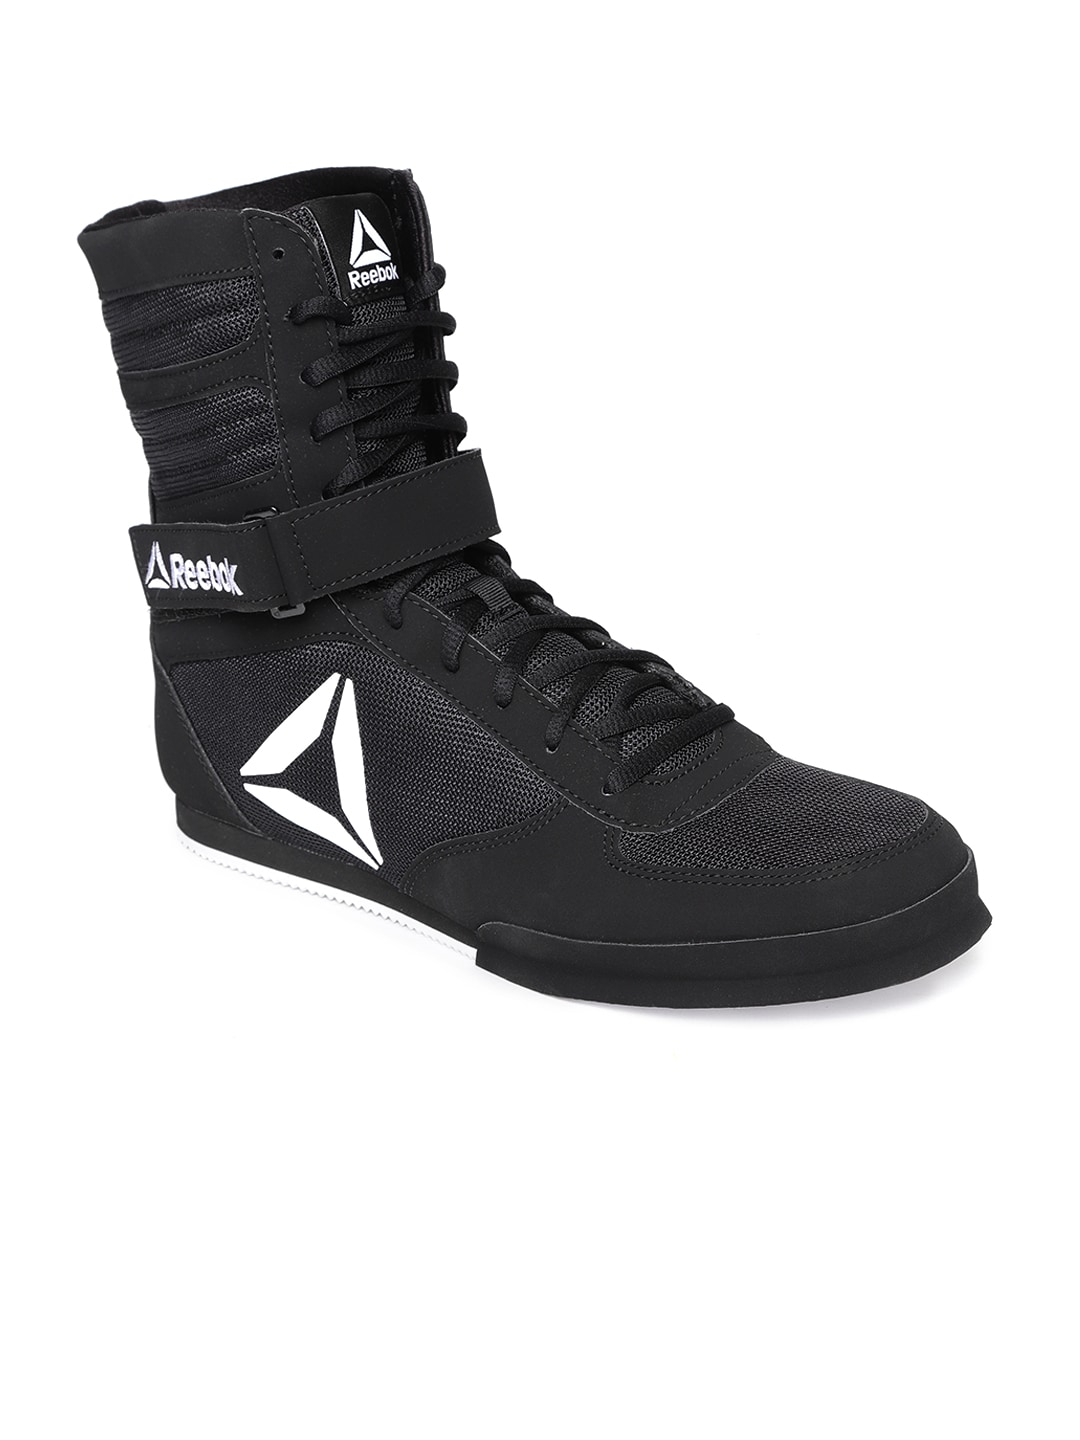 Reebok Men's Boxing Boot Buck Shoes